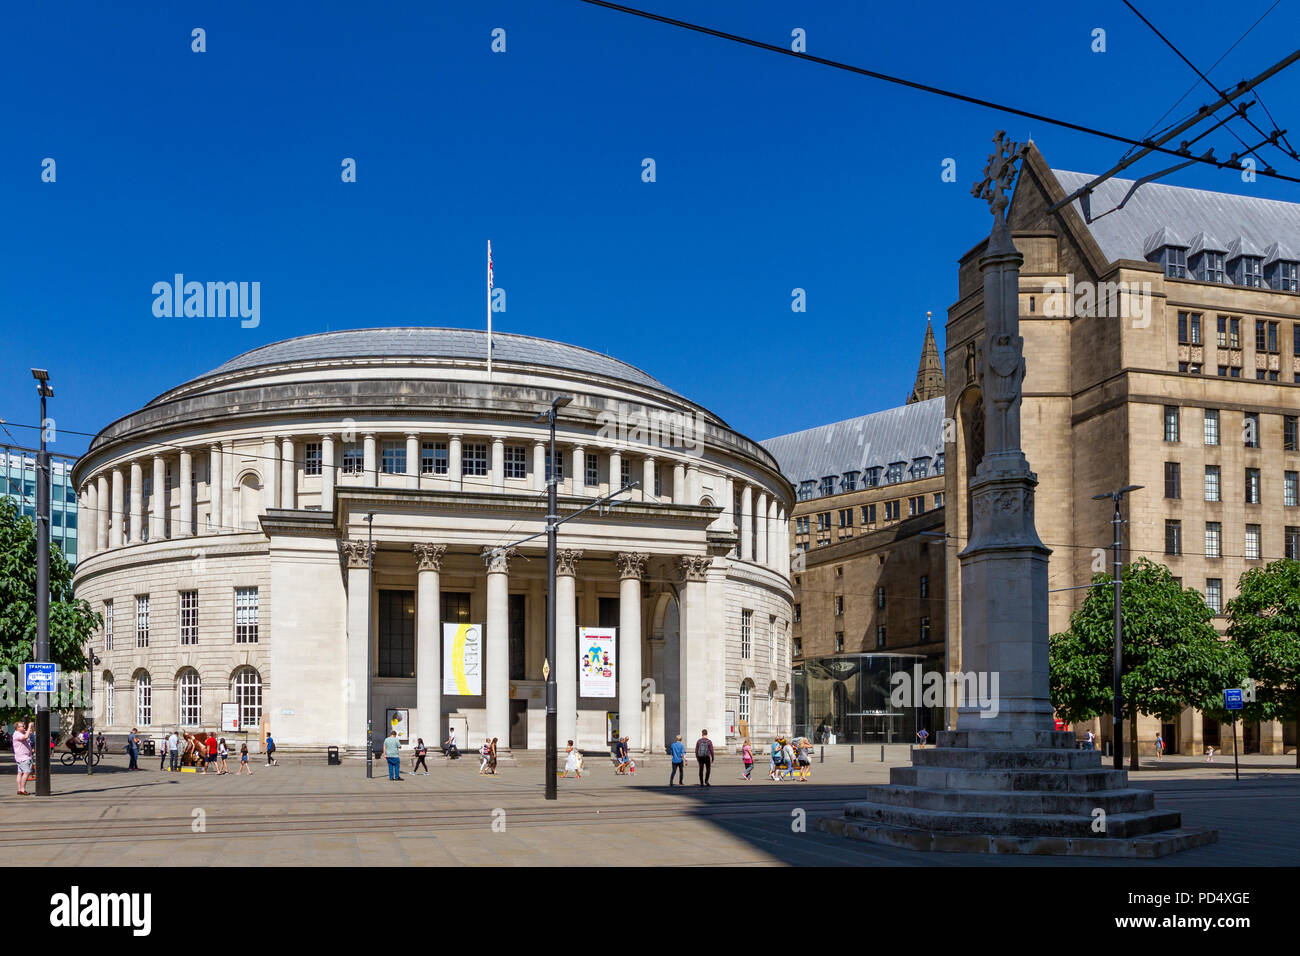 Central Library in St Peters Square, Manchester. Stock Photo